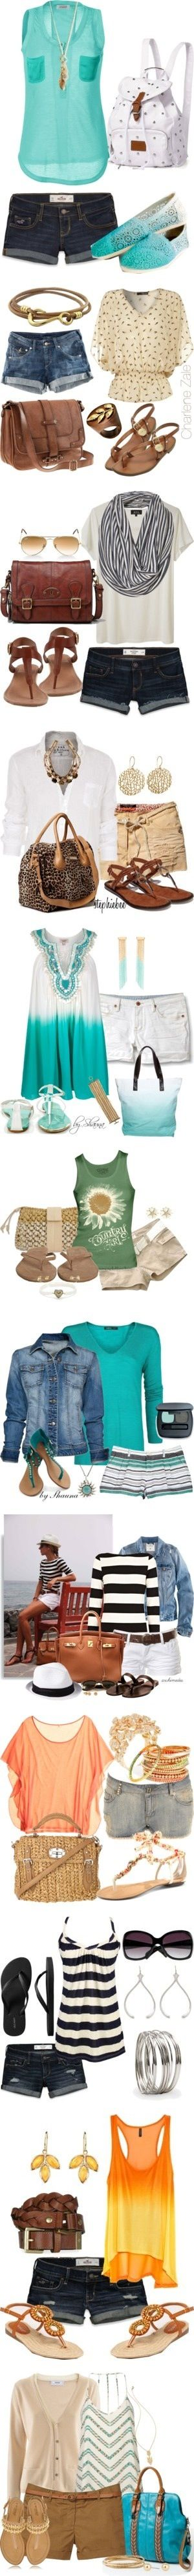 cute put together outfits for any season